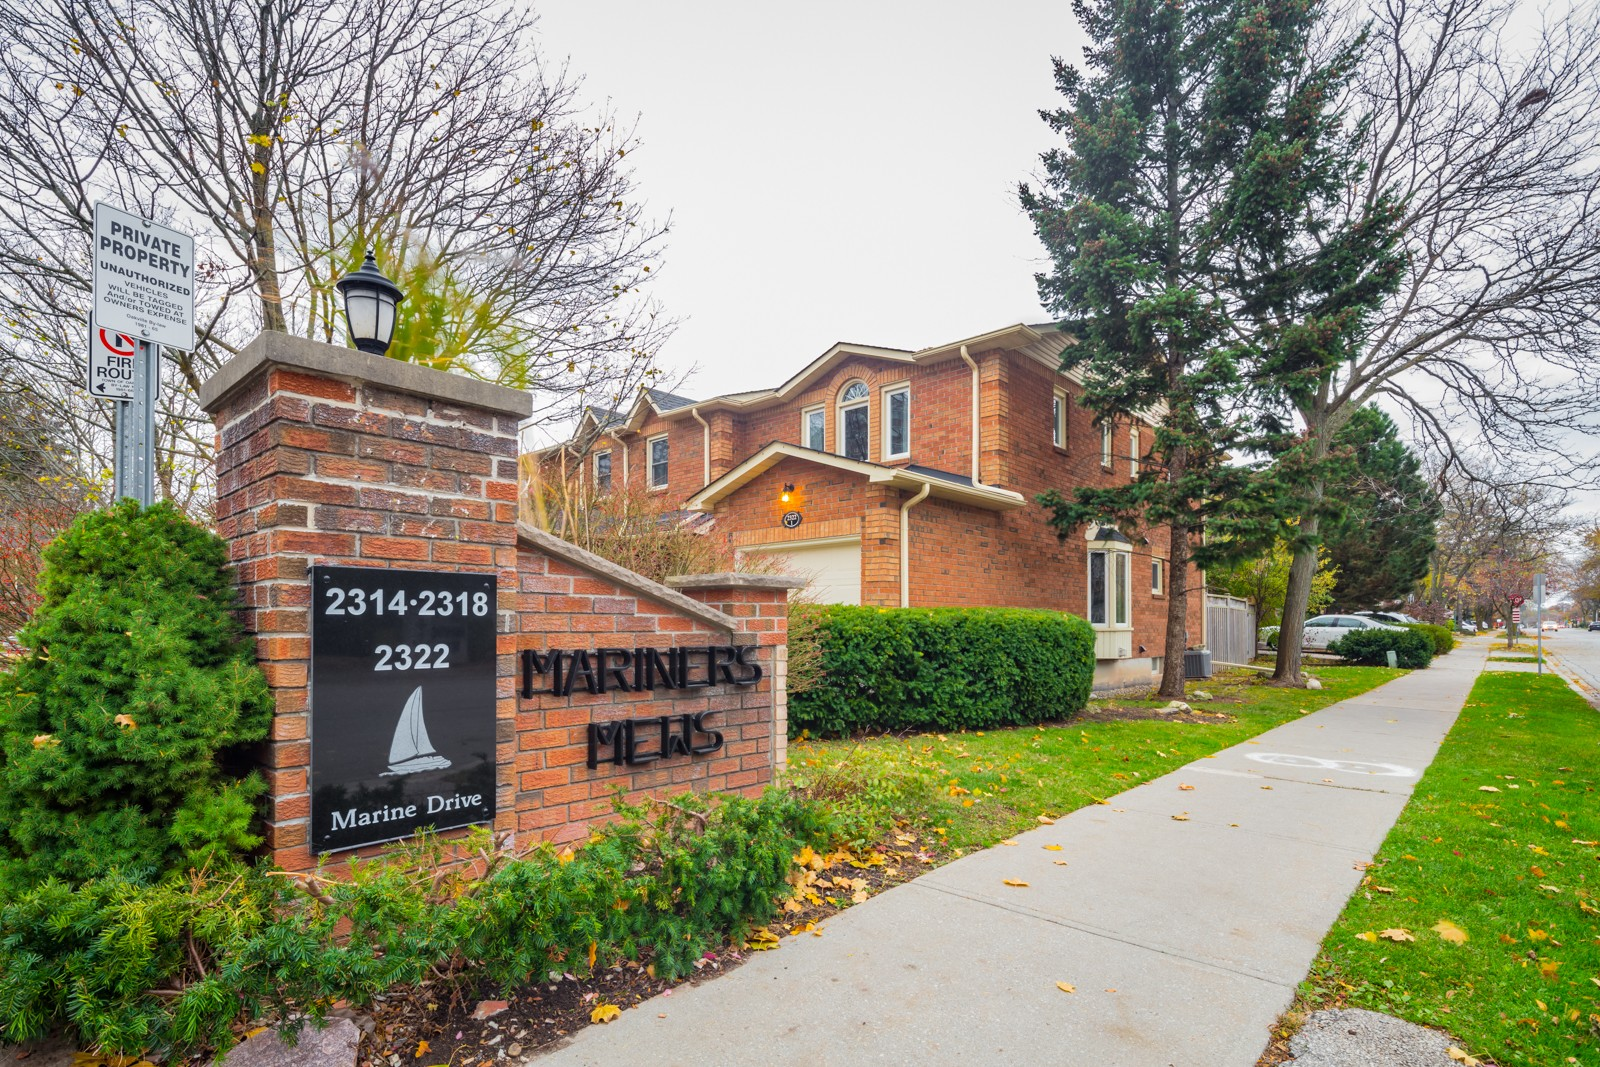 Mariners Mews at 2314 Marine Dr, Oakville 0